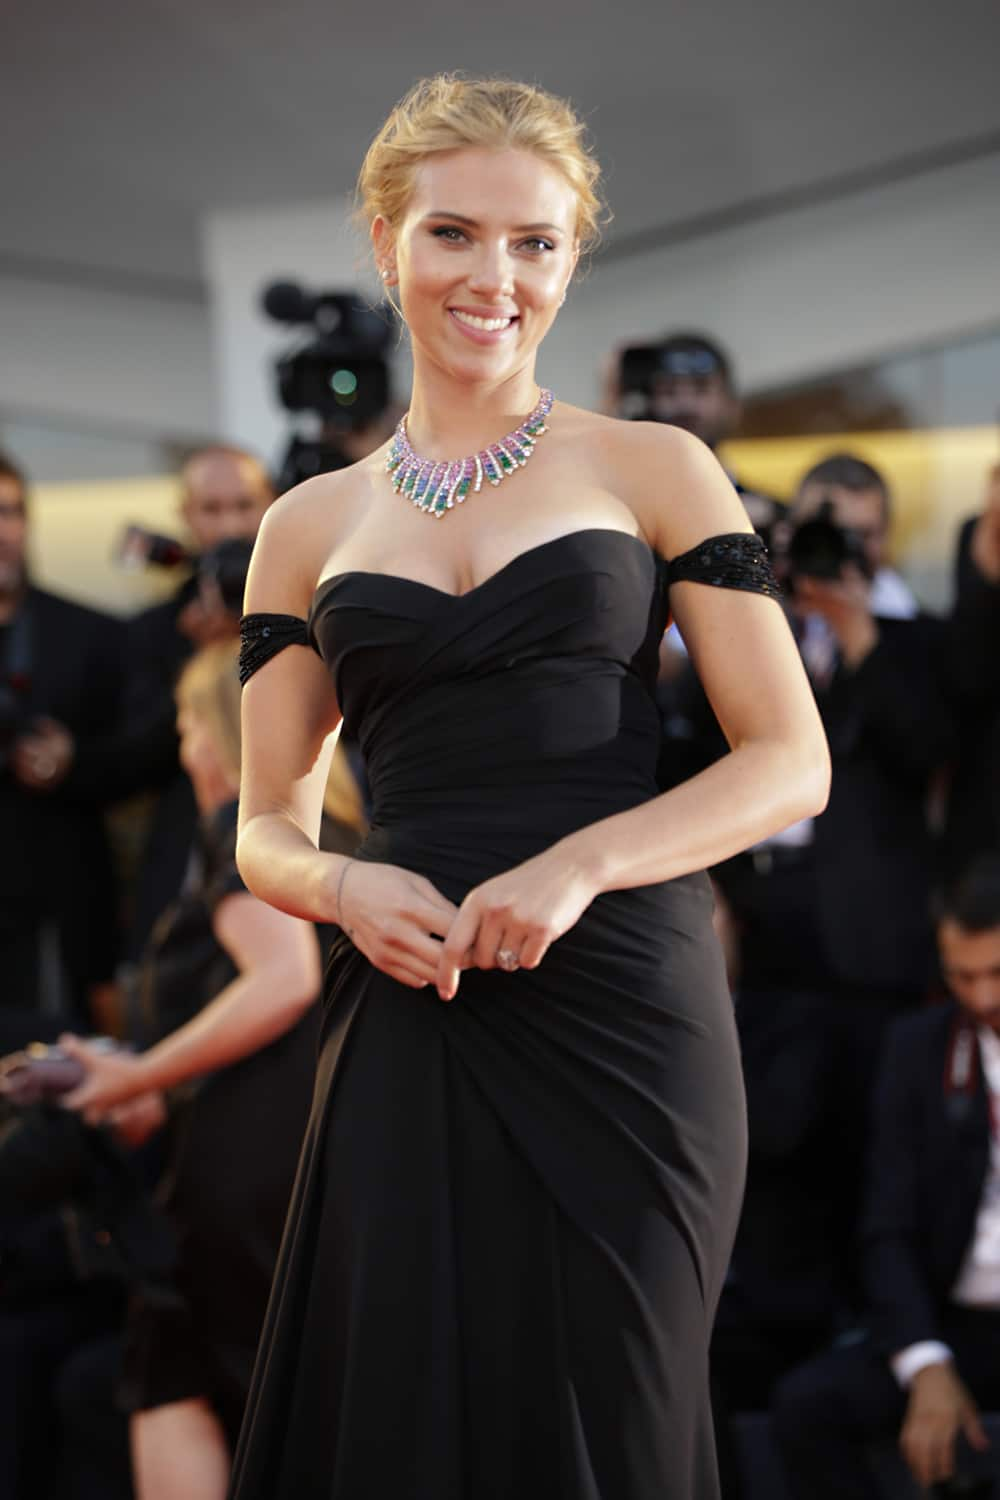 Actress Scarlett Johansson poses for photographers on the red carpet for the screening of the film Under The Skin at the 70th edition of the Venice Film Festival .